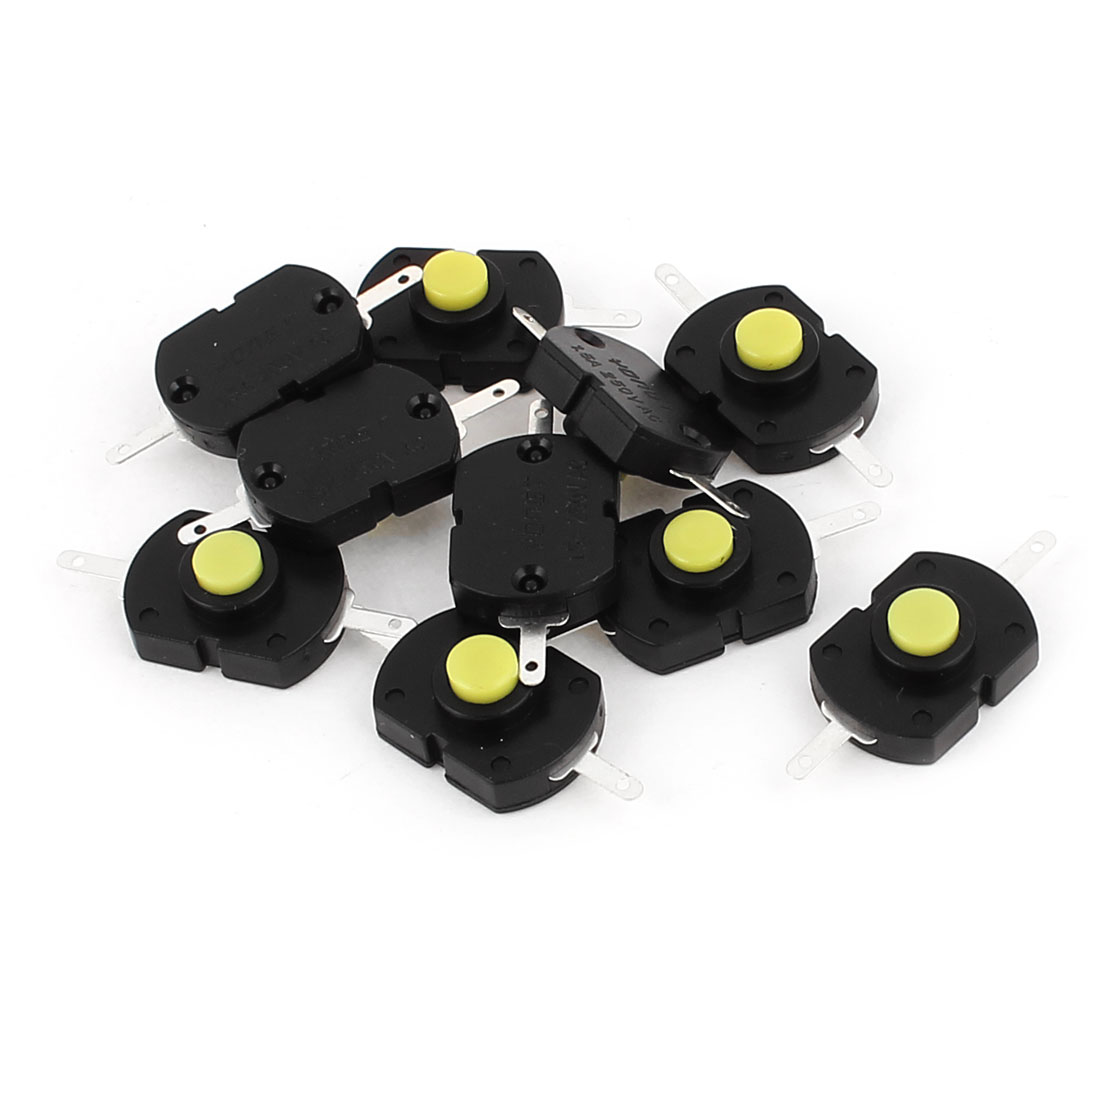 AC250V 1.5A 2 Terminals ON/OFF Latching DIP Push Button Tact Tactile Switch 10Pcs